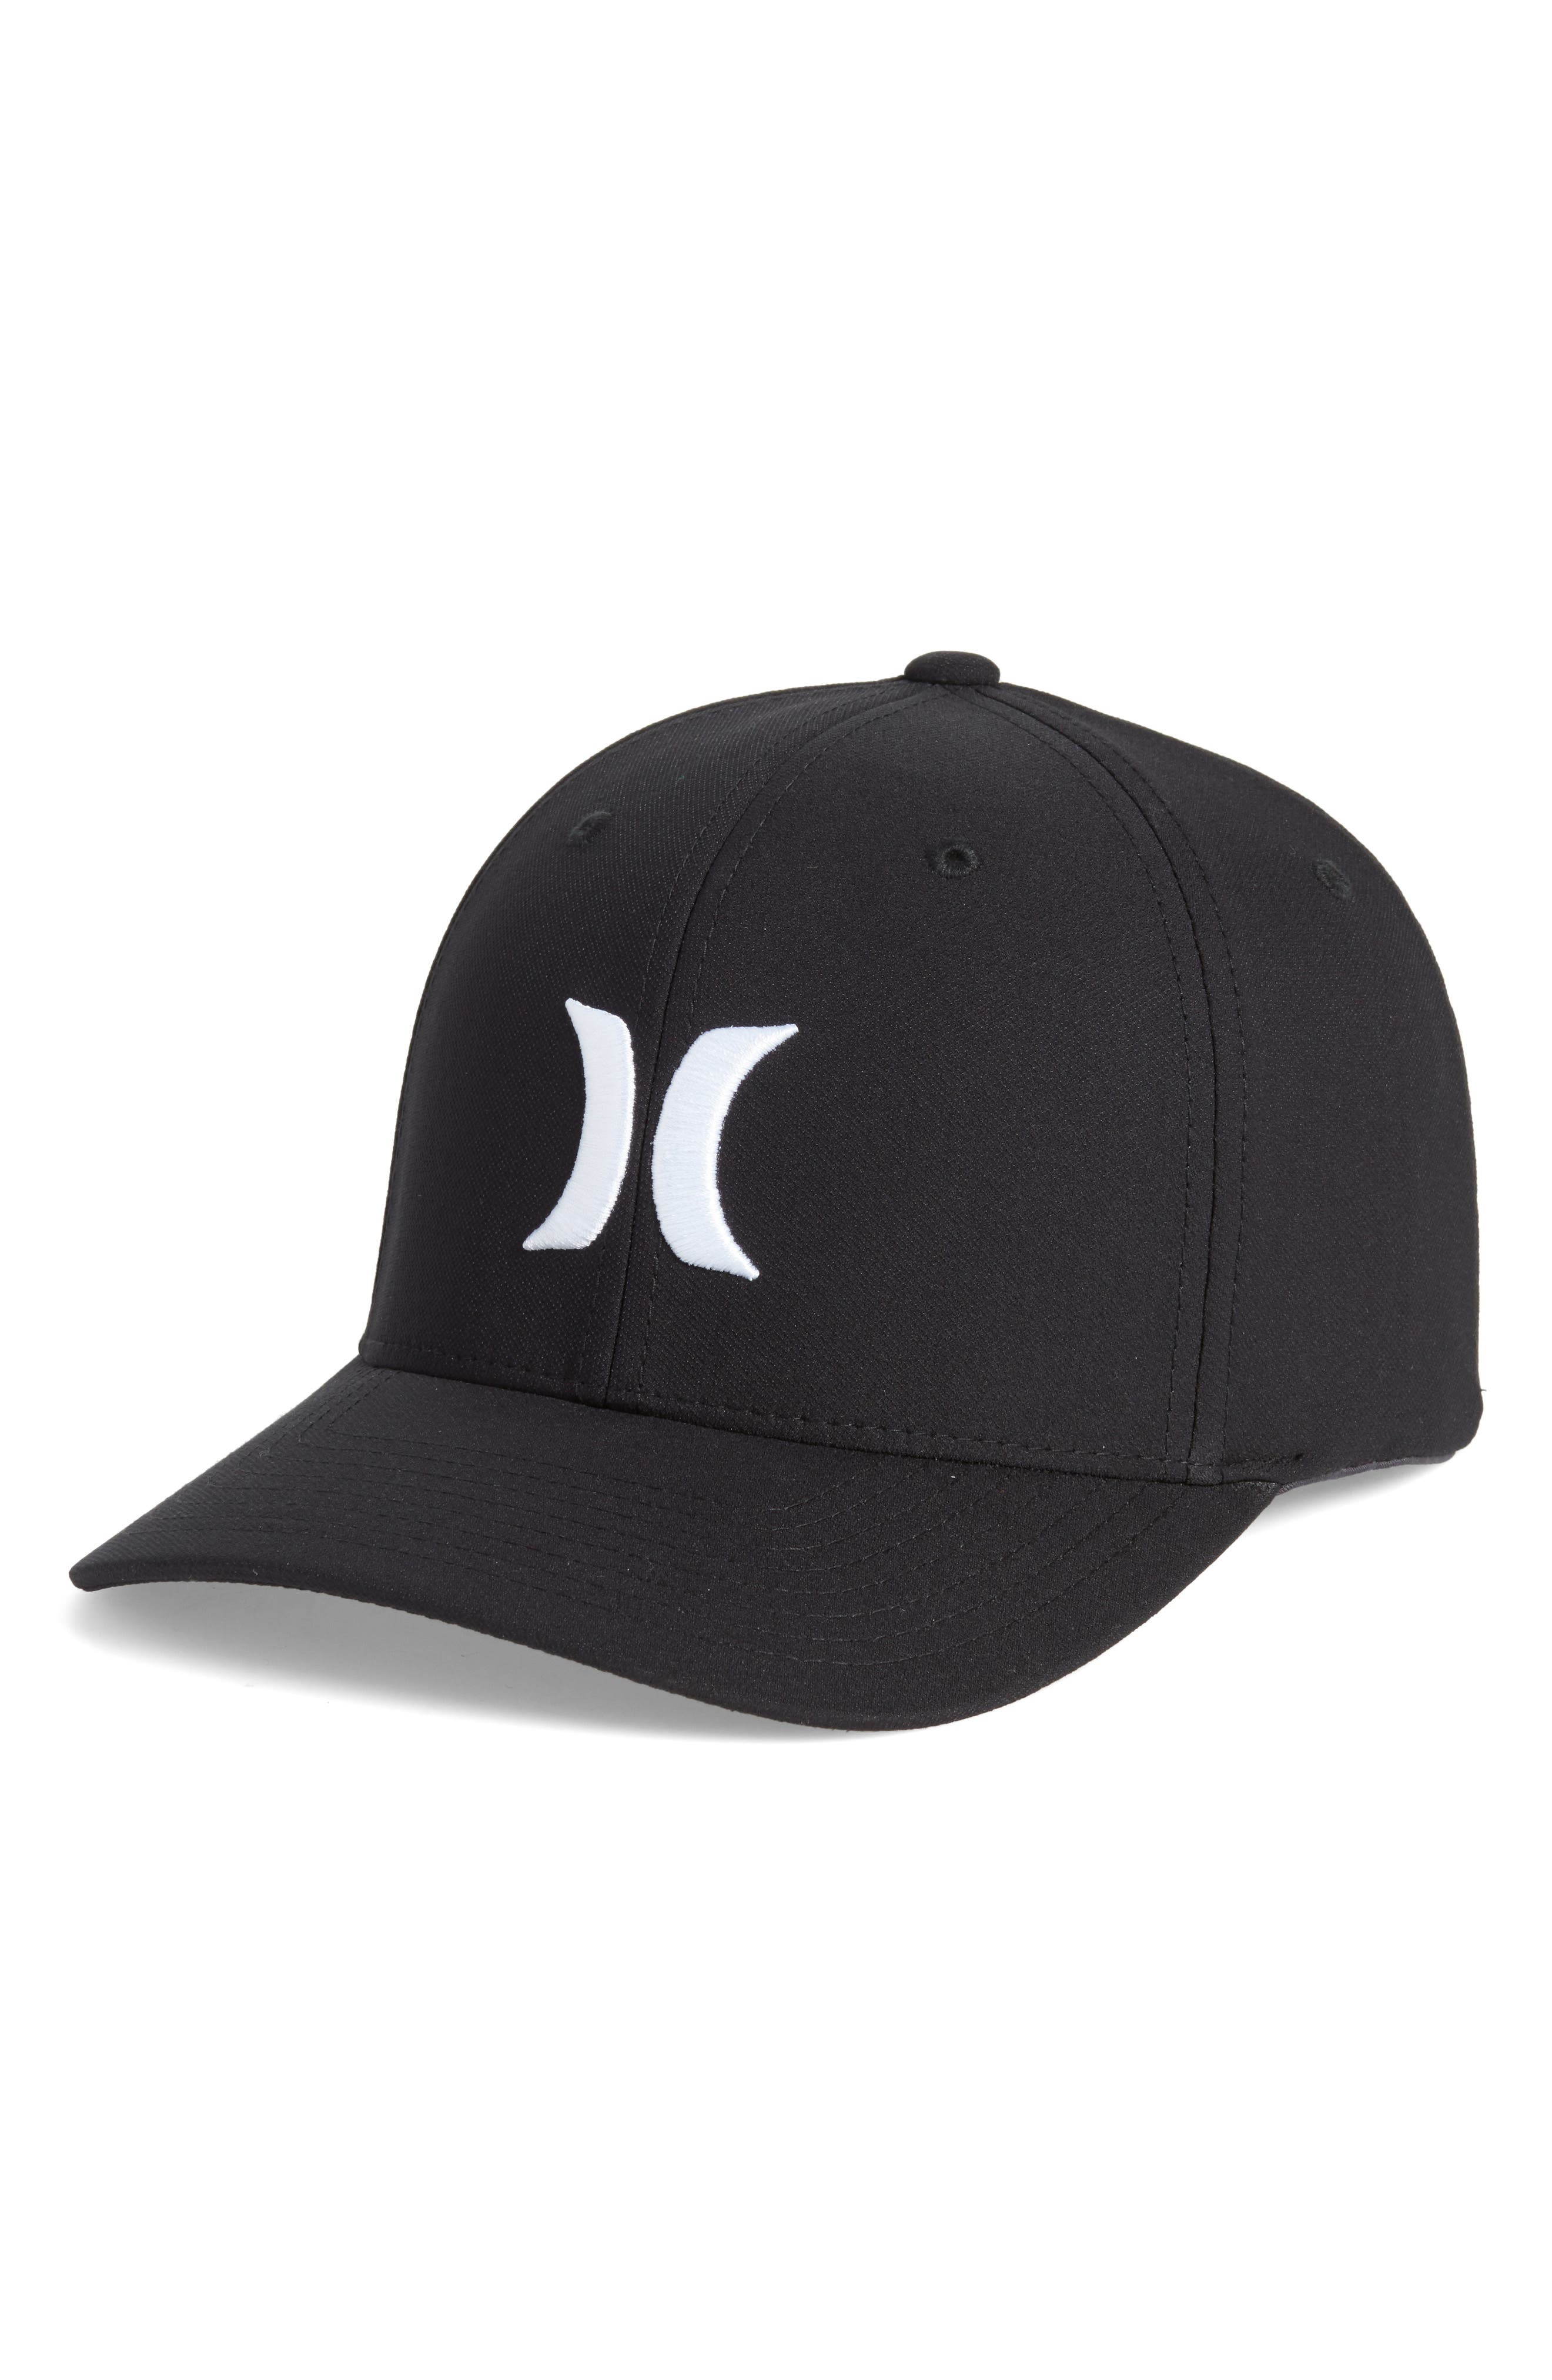 Alternate Image 1 Selected - Hurley Dri-FIT One & Only Logo Cap